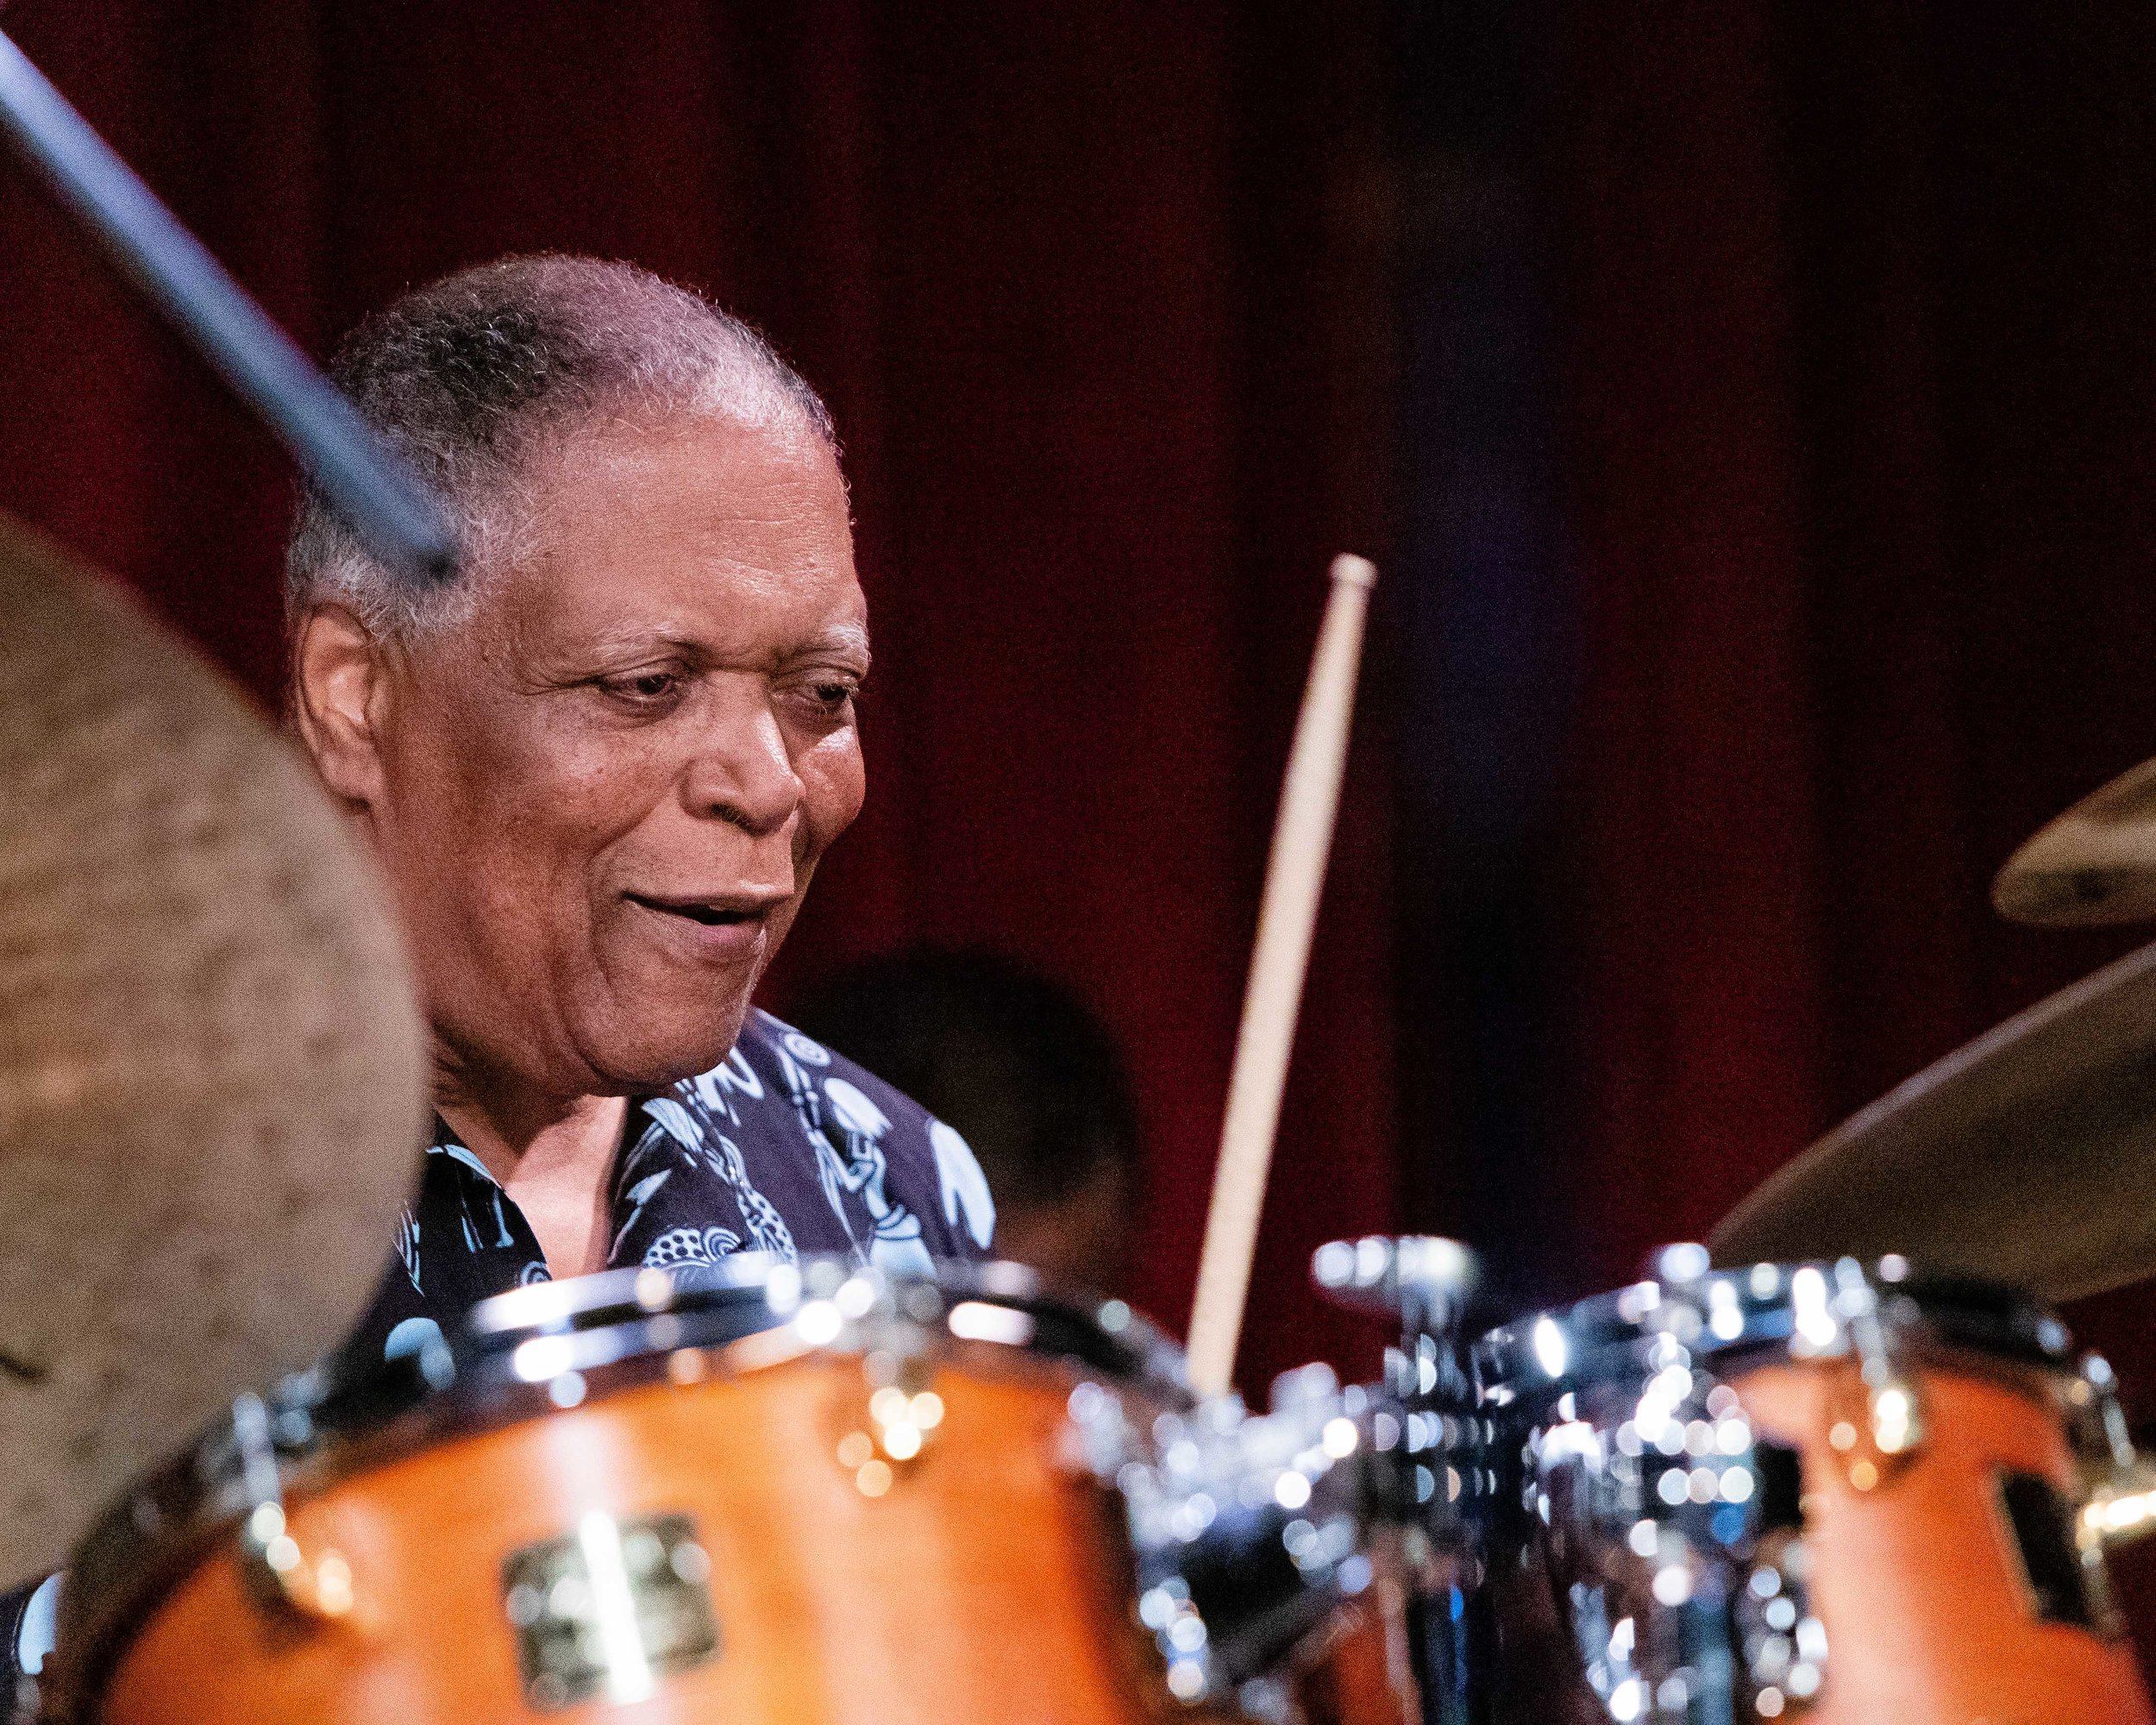 Billy Hart on drums with The Cookers